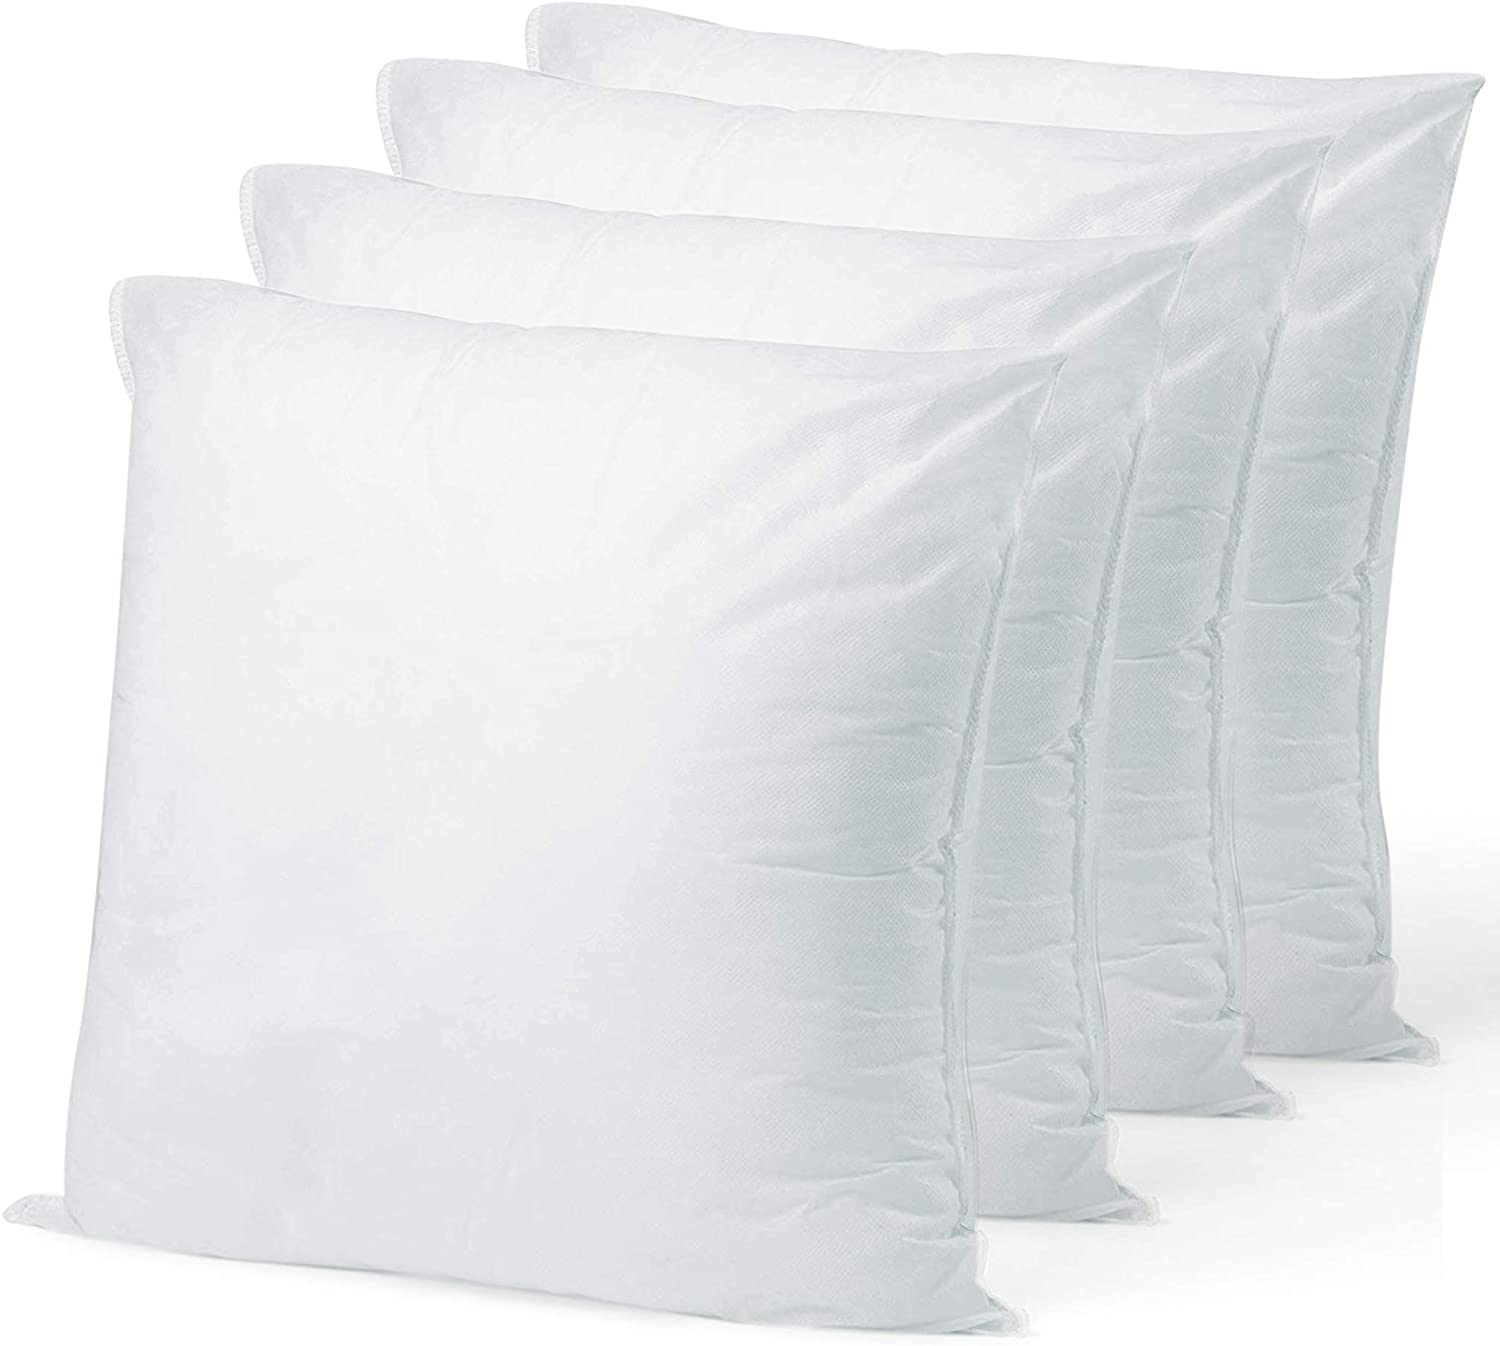 Hometex Canada Pillow Insert 17